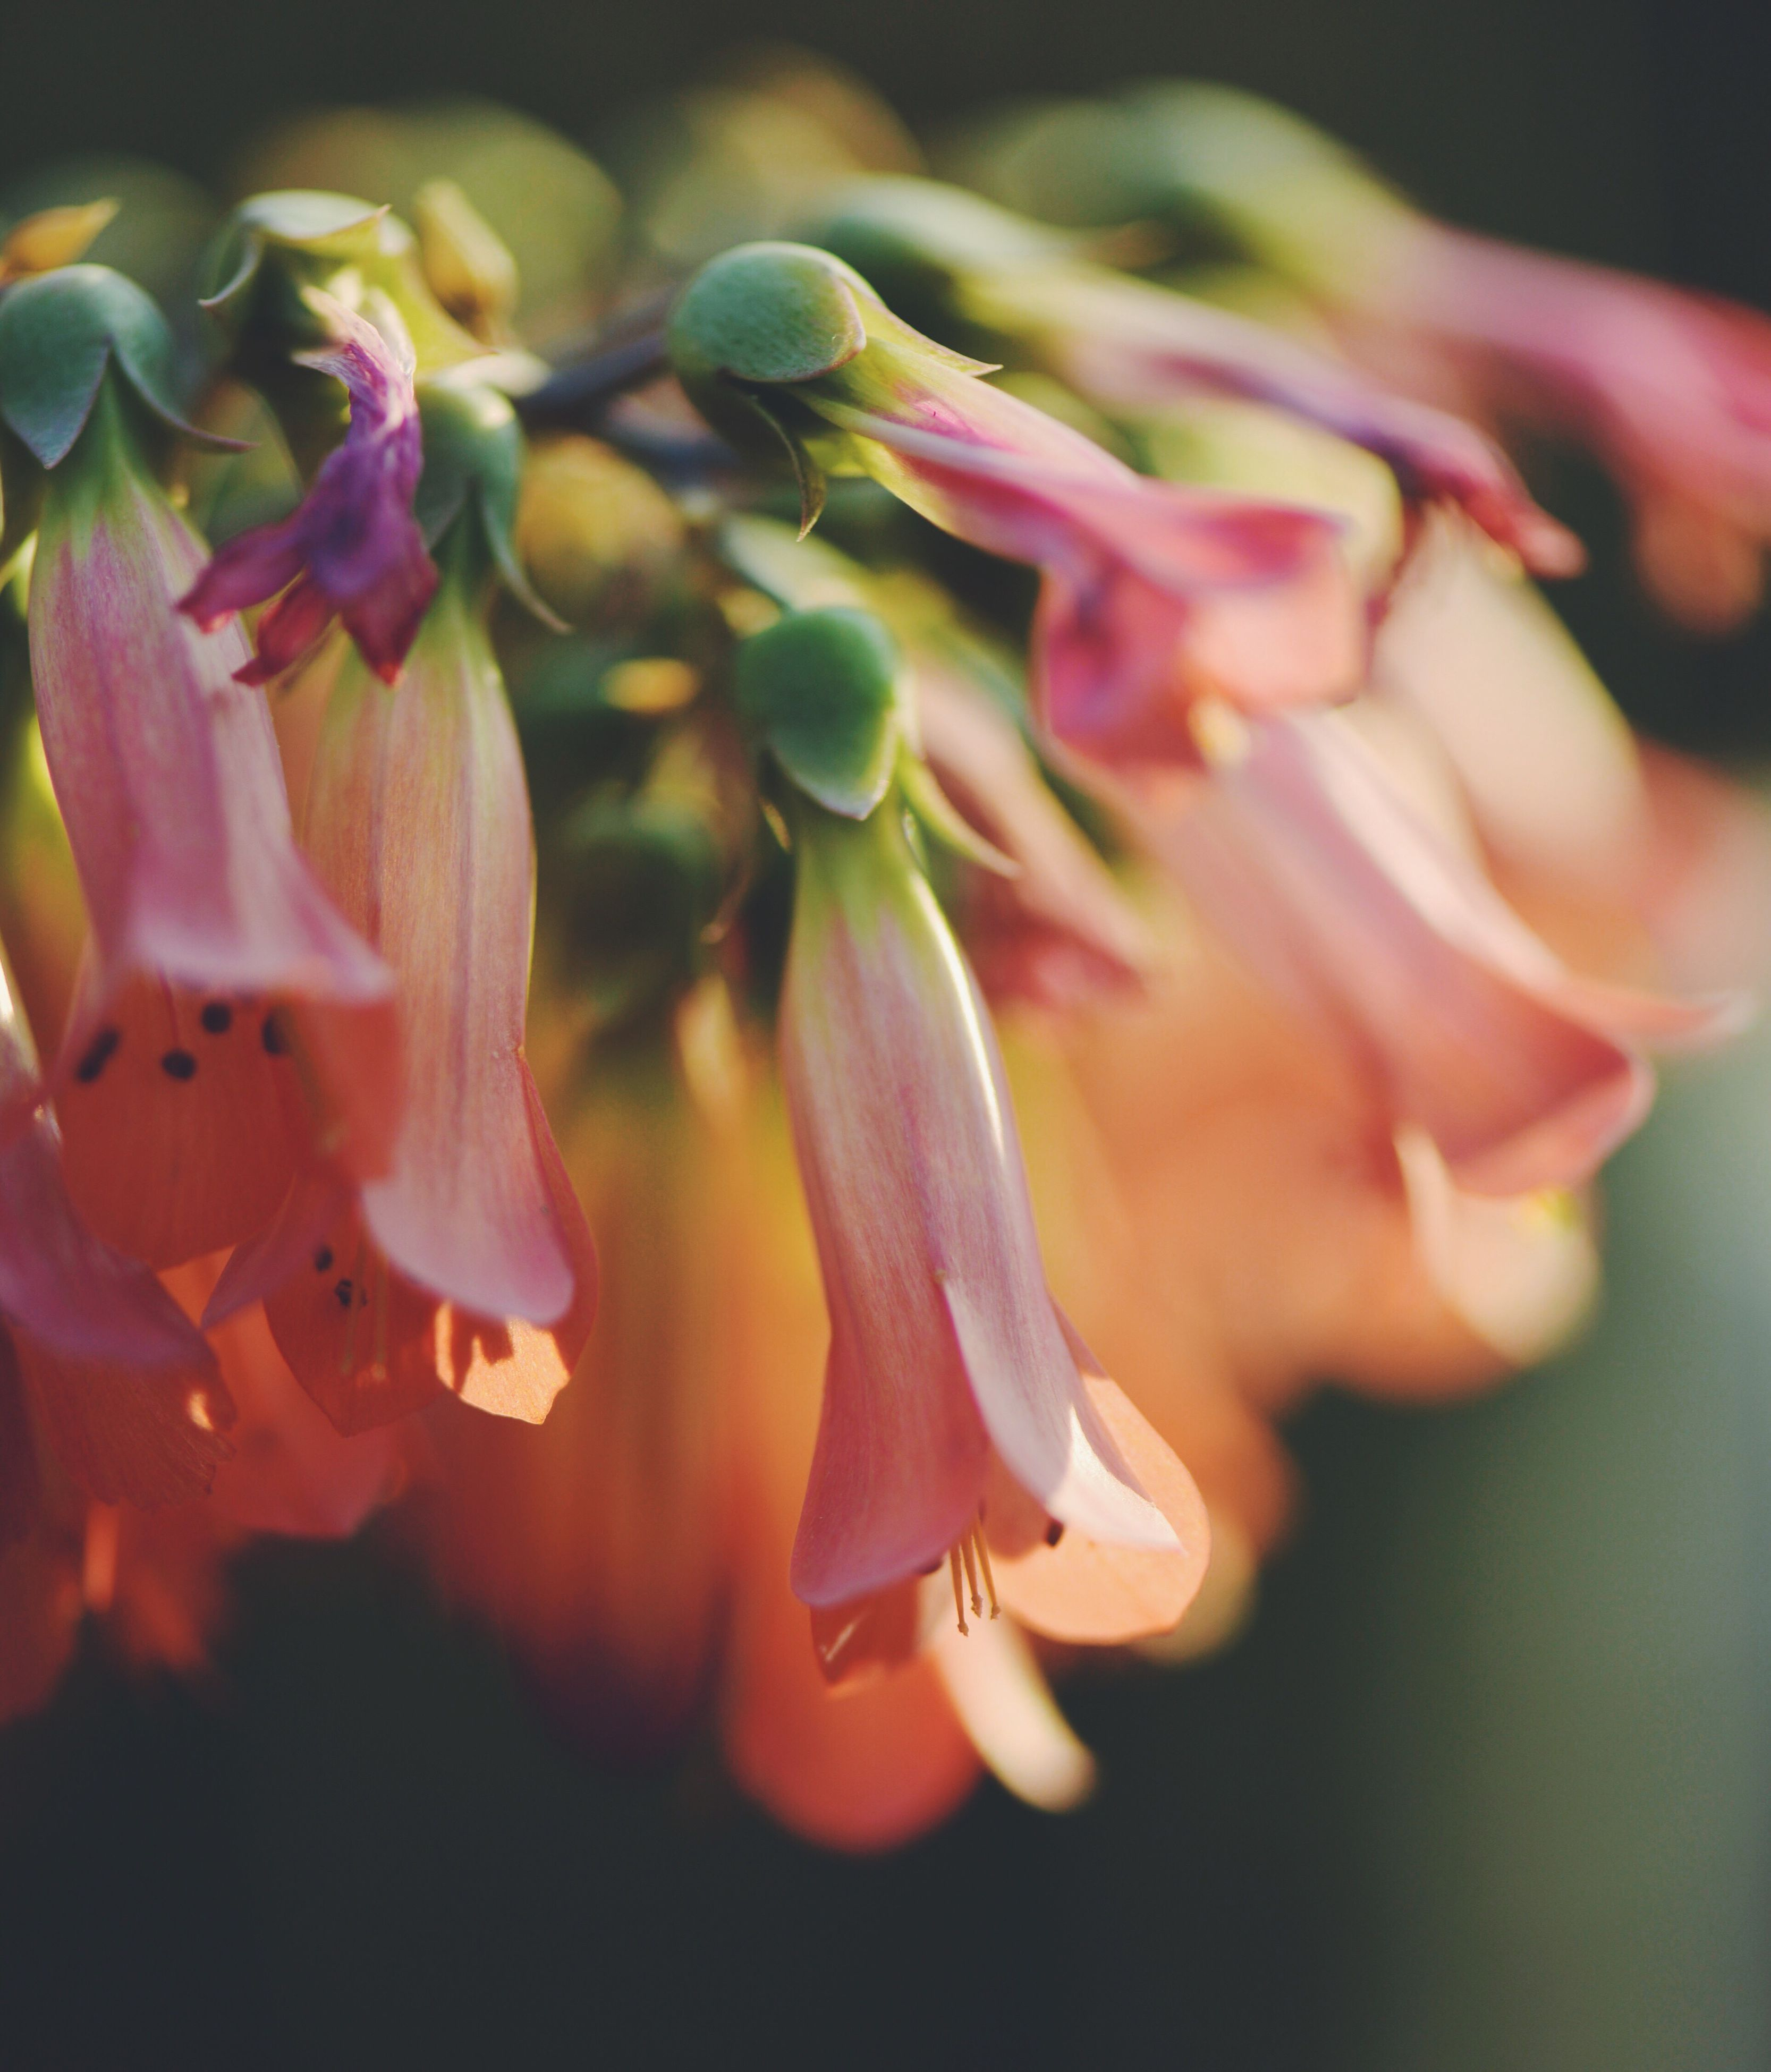 flower, fragility, close-up, growth, beauty in nature, petal, freshness, nature, flower head, plant, no people, day, outdoors